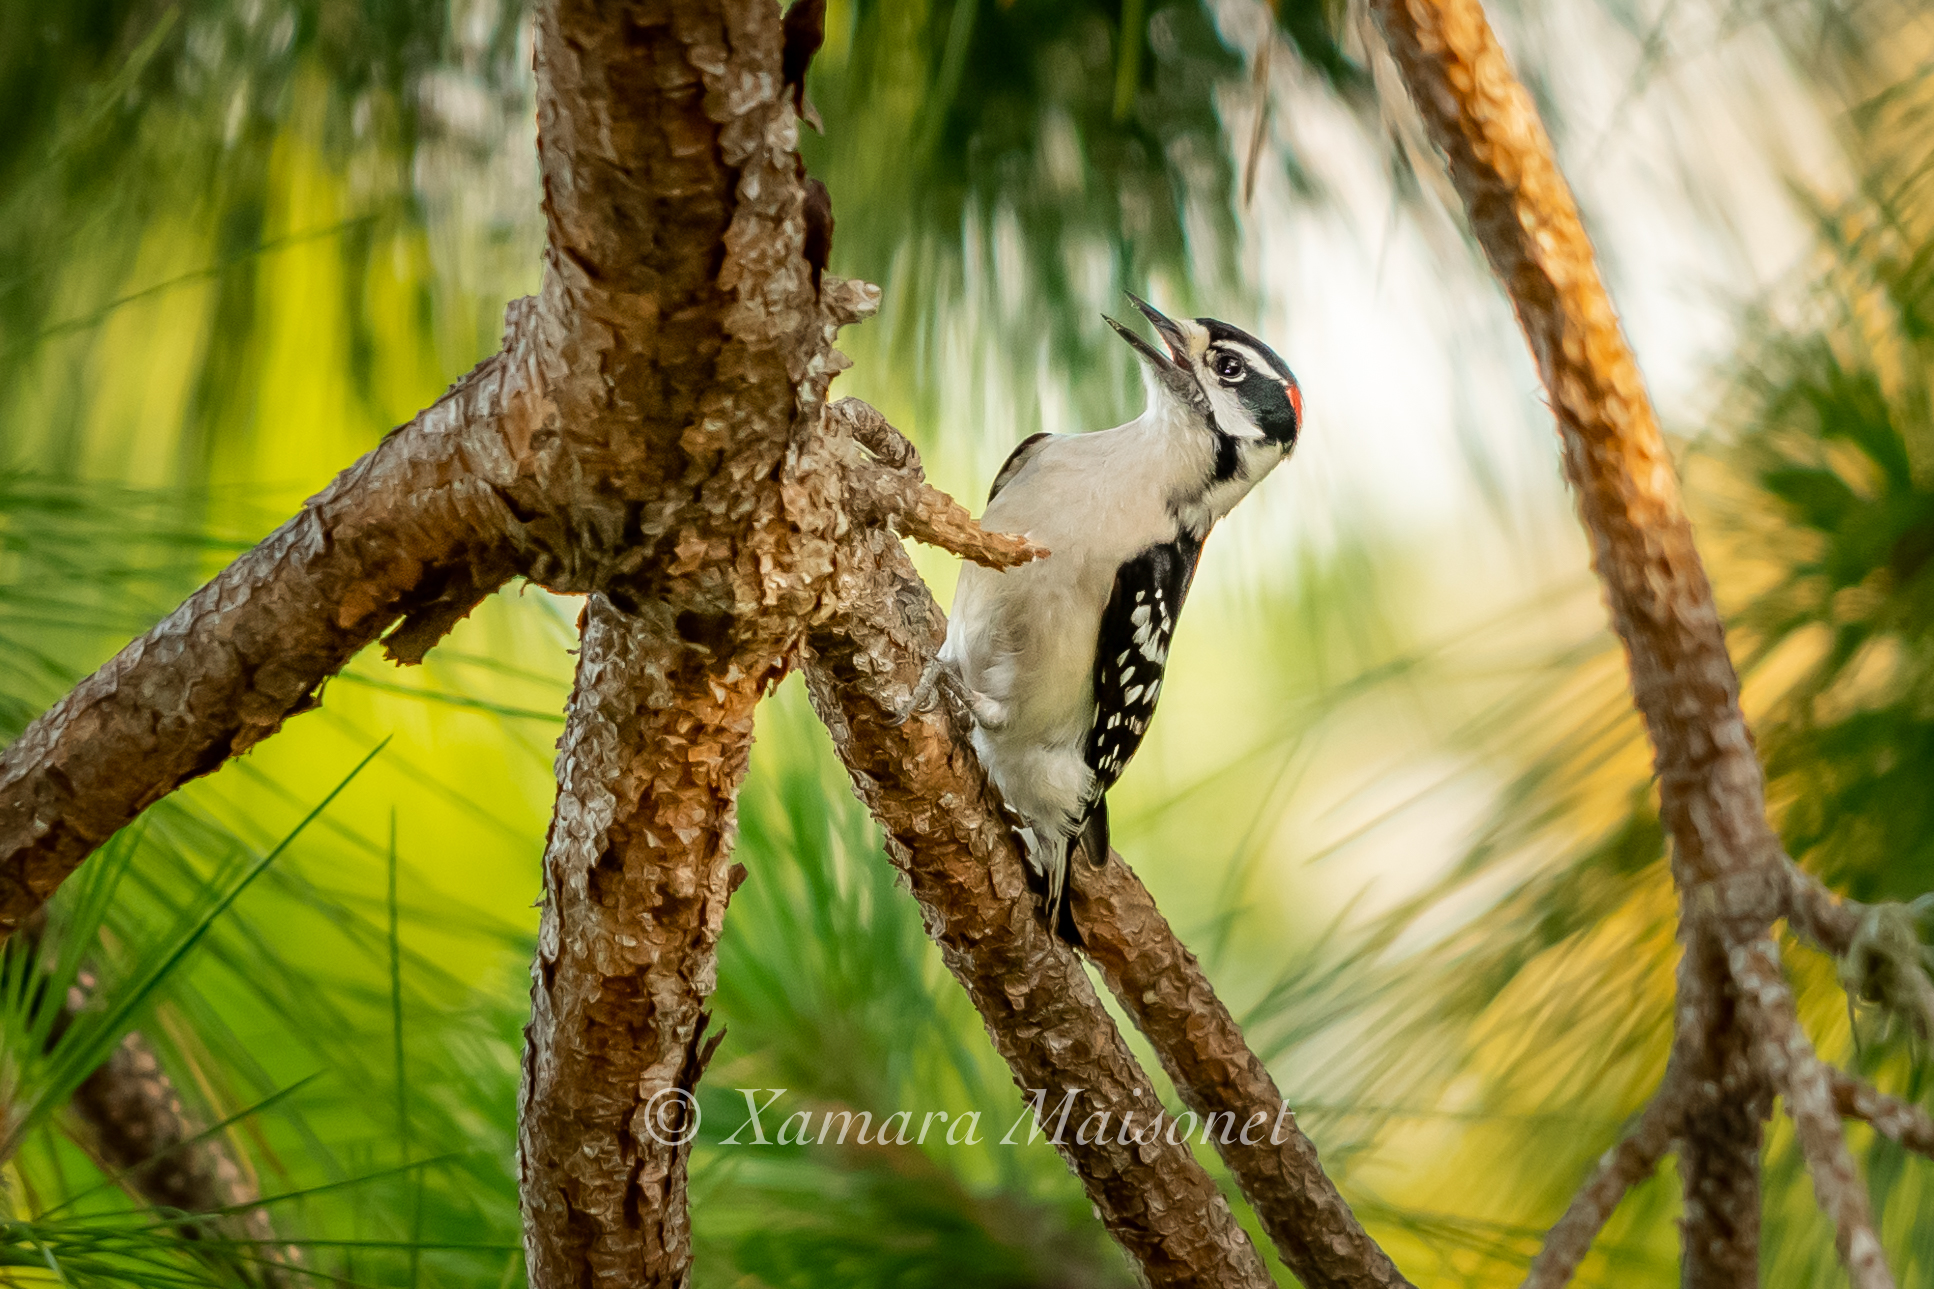 The Anhinga and The Woodpecker